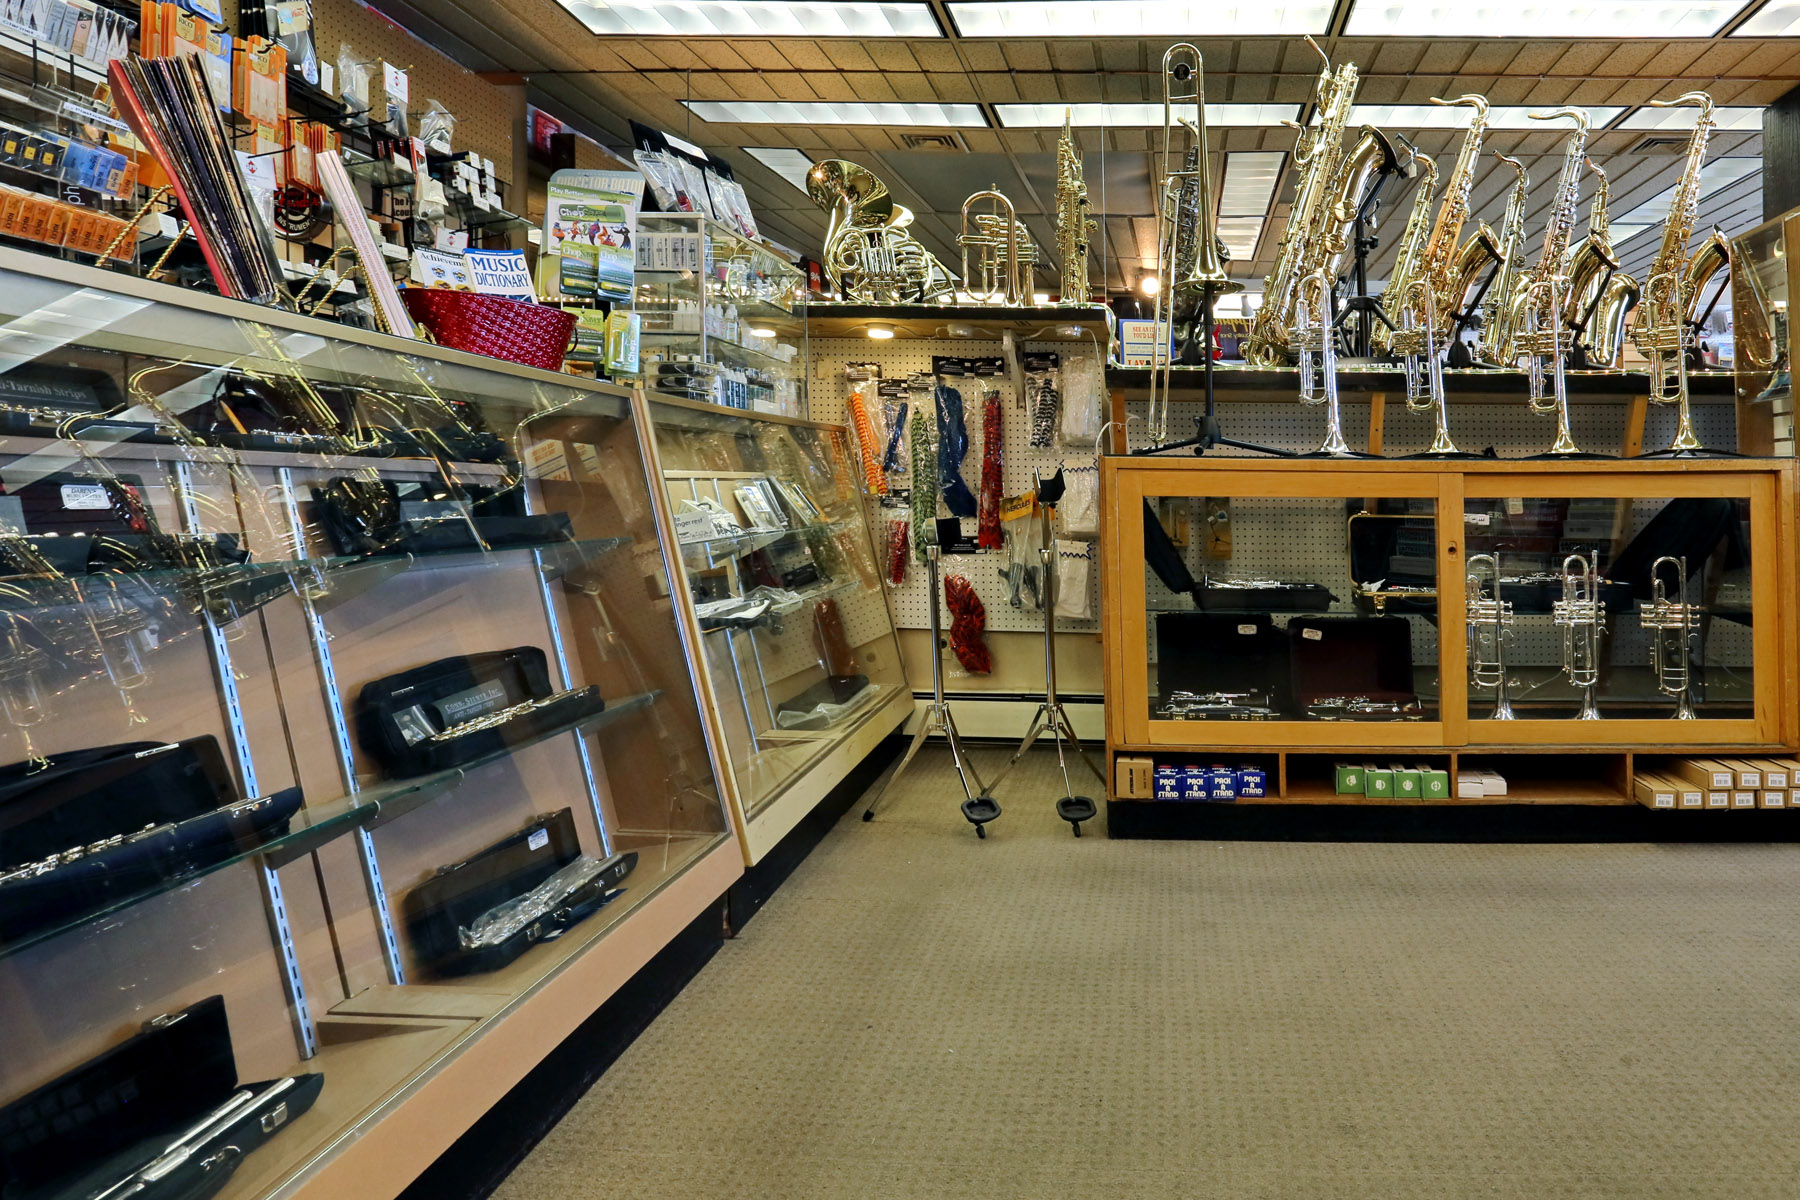 Interior shot of a music store